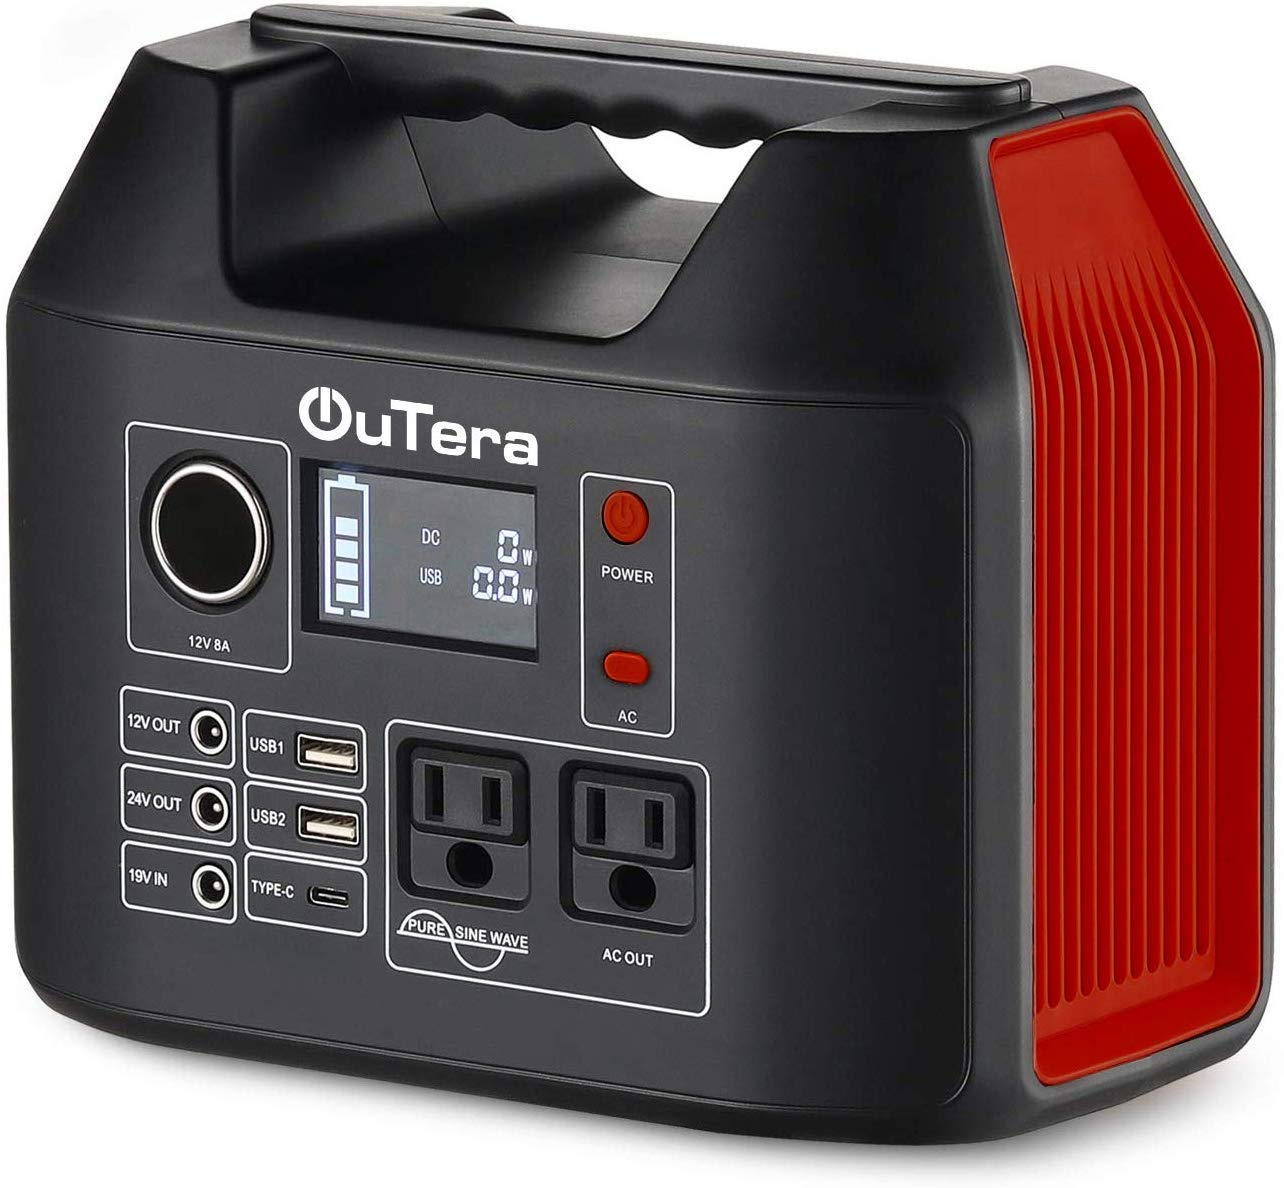 OUTERA Portable Power Station 298Wh, Portable Solar Generators Backup Camping Lithium Battery Pack, 110V 300W Outdoors Solar Generator for Laptops Cellphones Drones and More Electronics Yellow